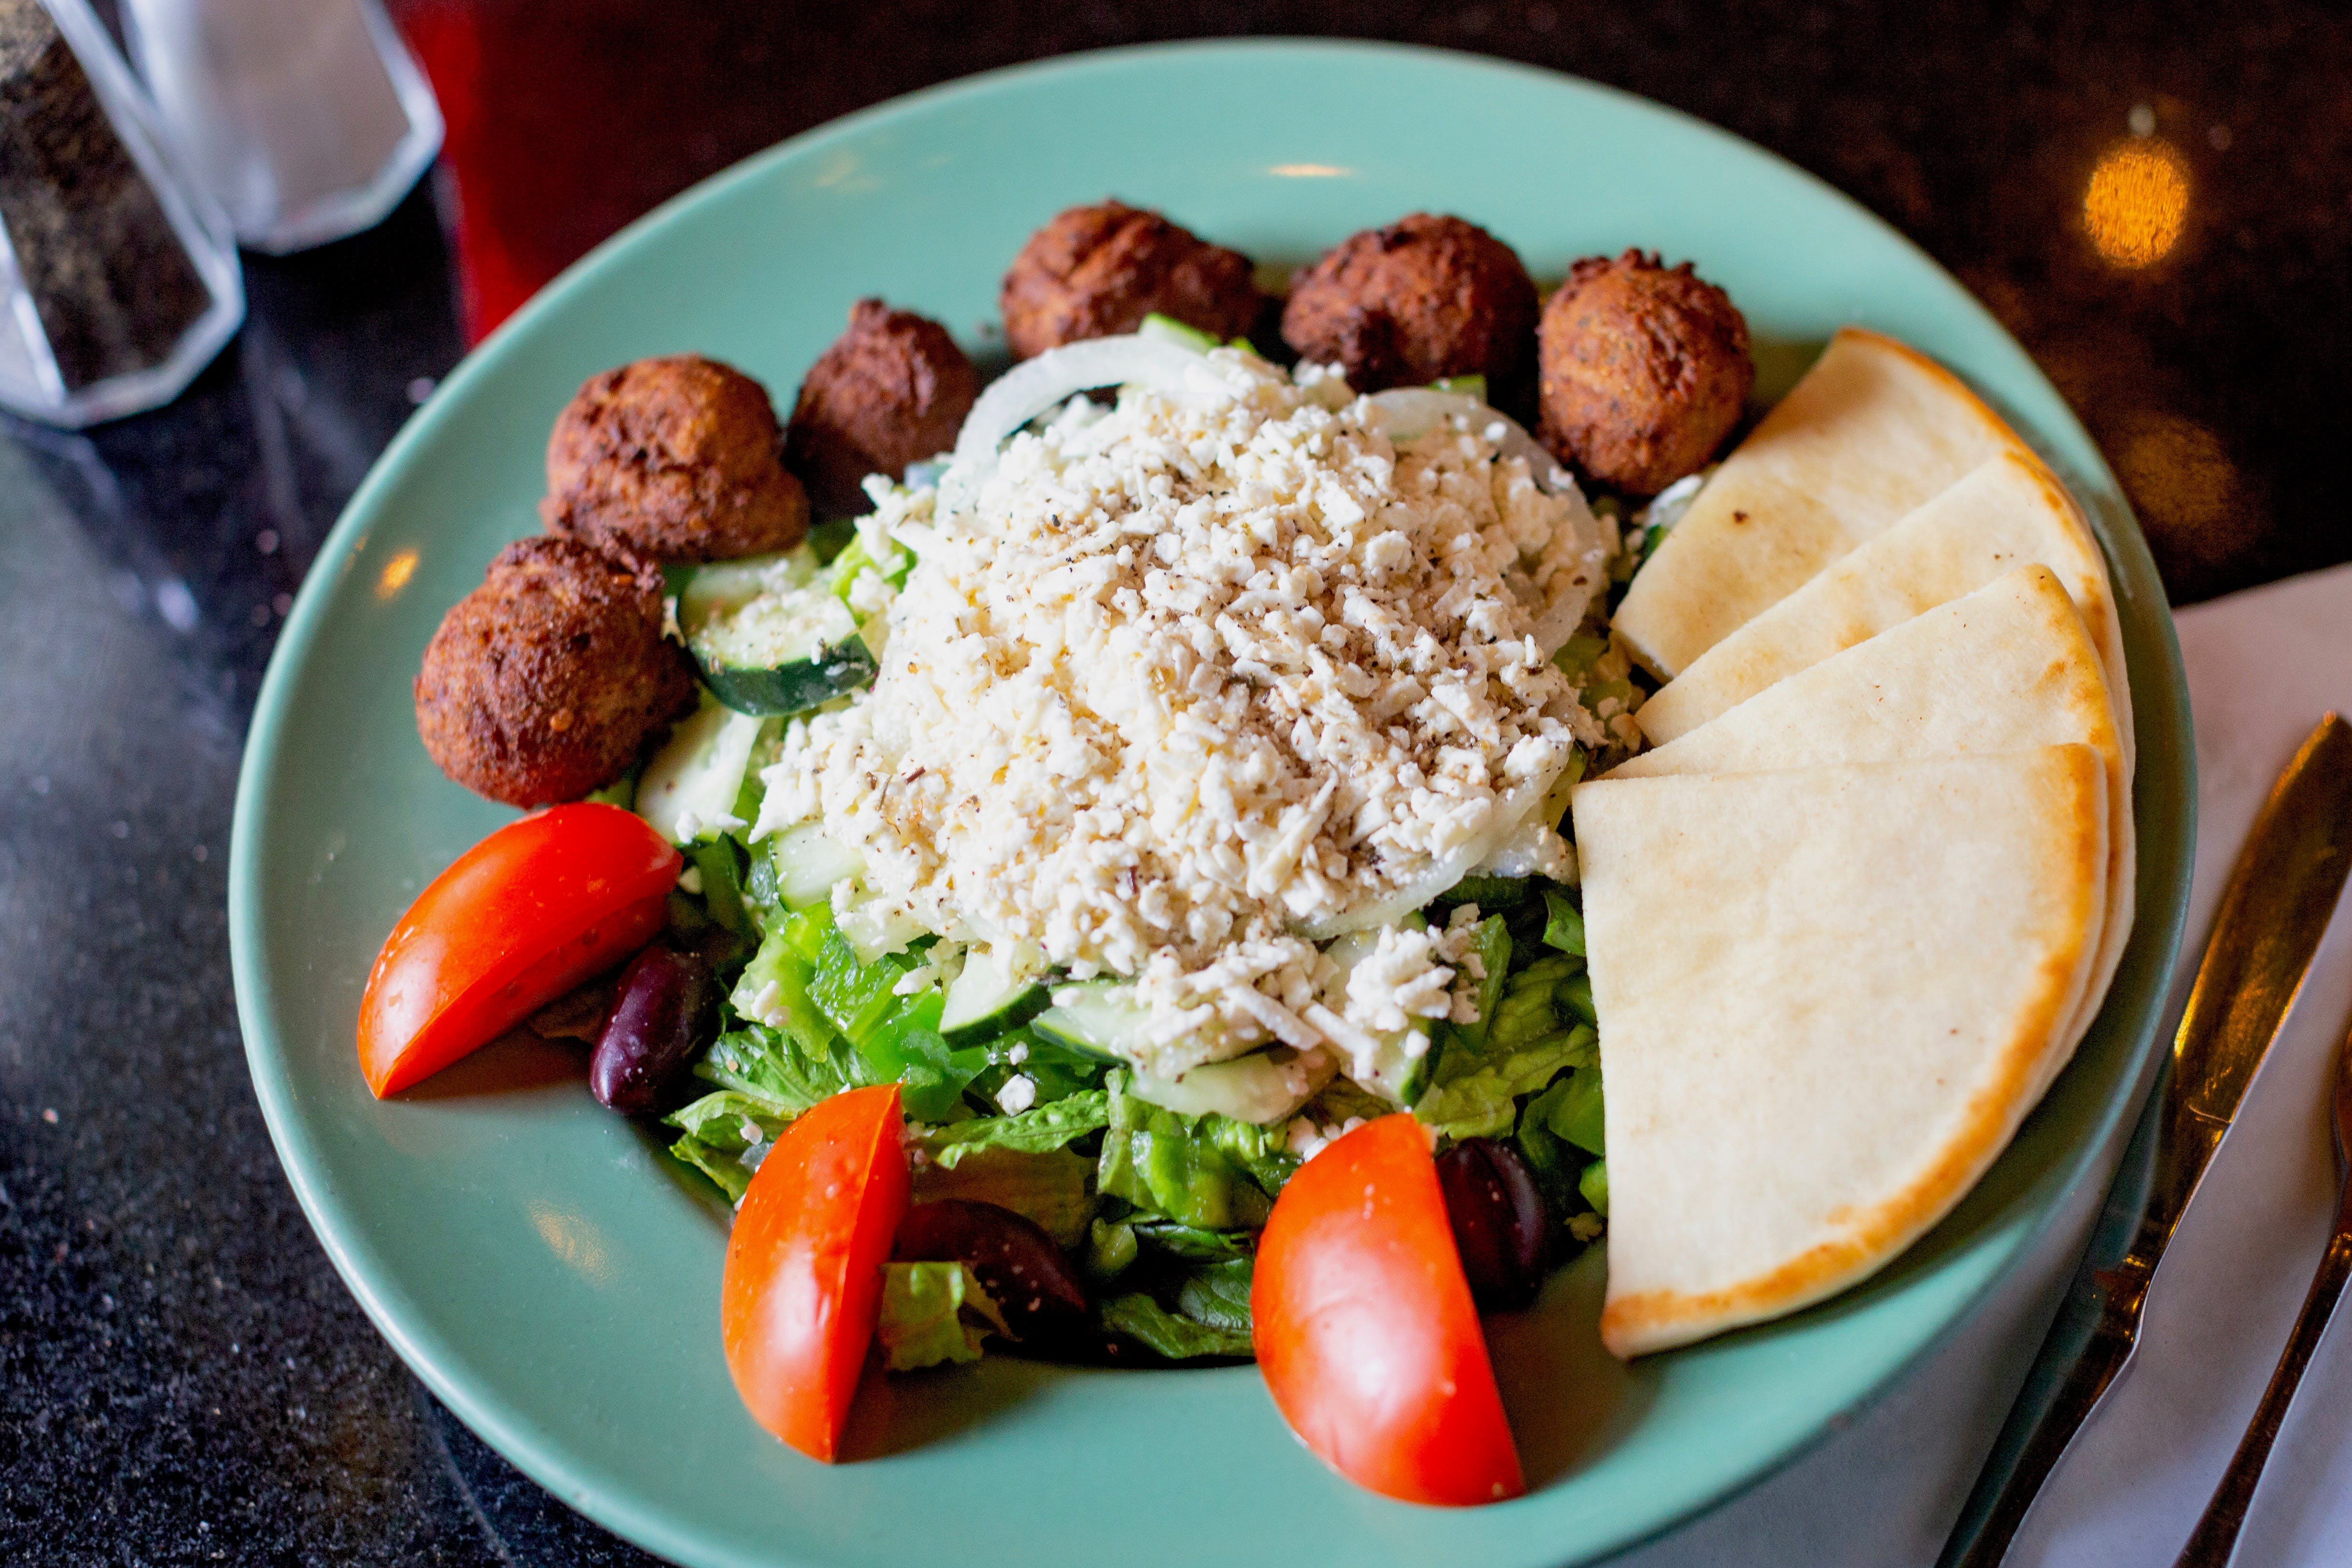 Falafel Salad from The Mad Greek in Lawrence, KS